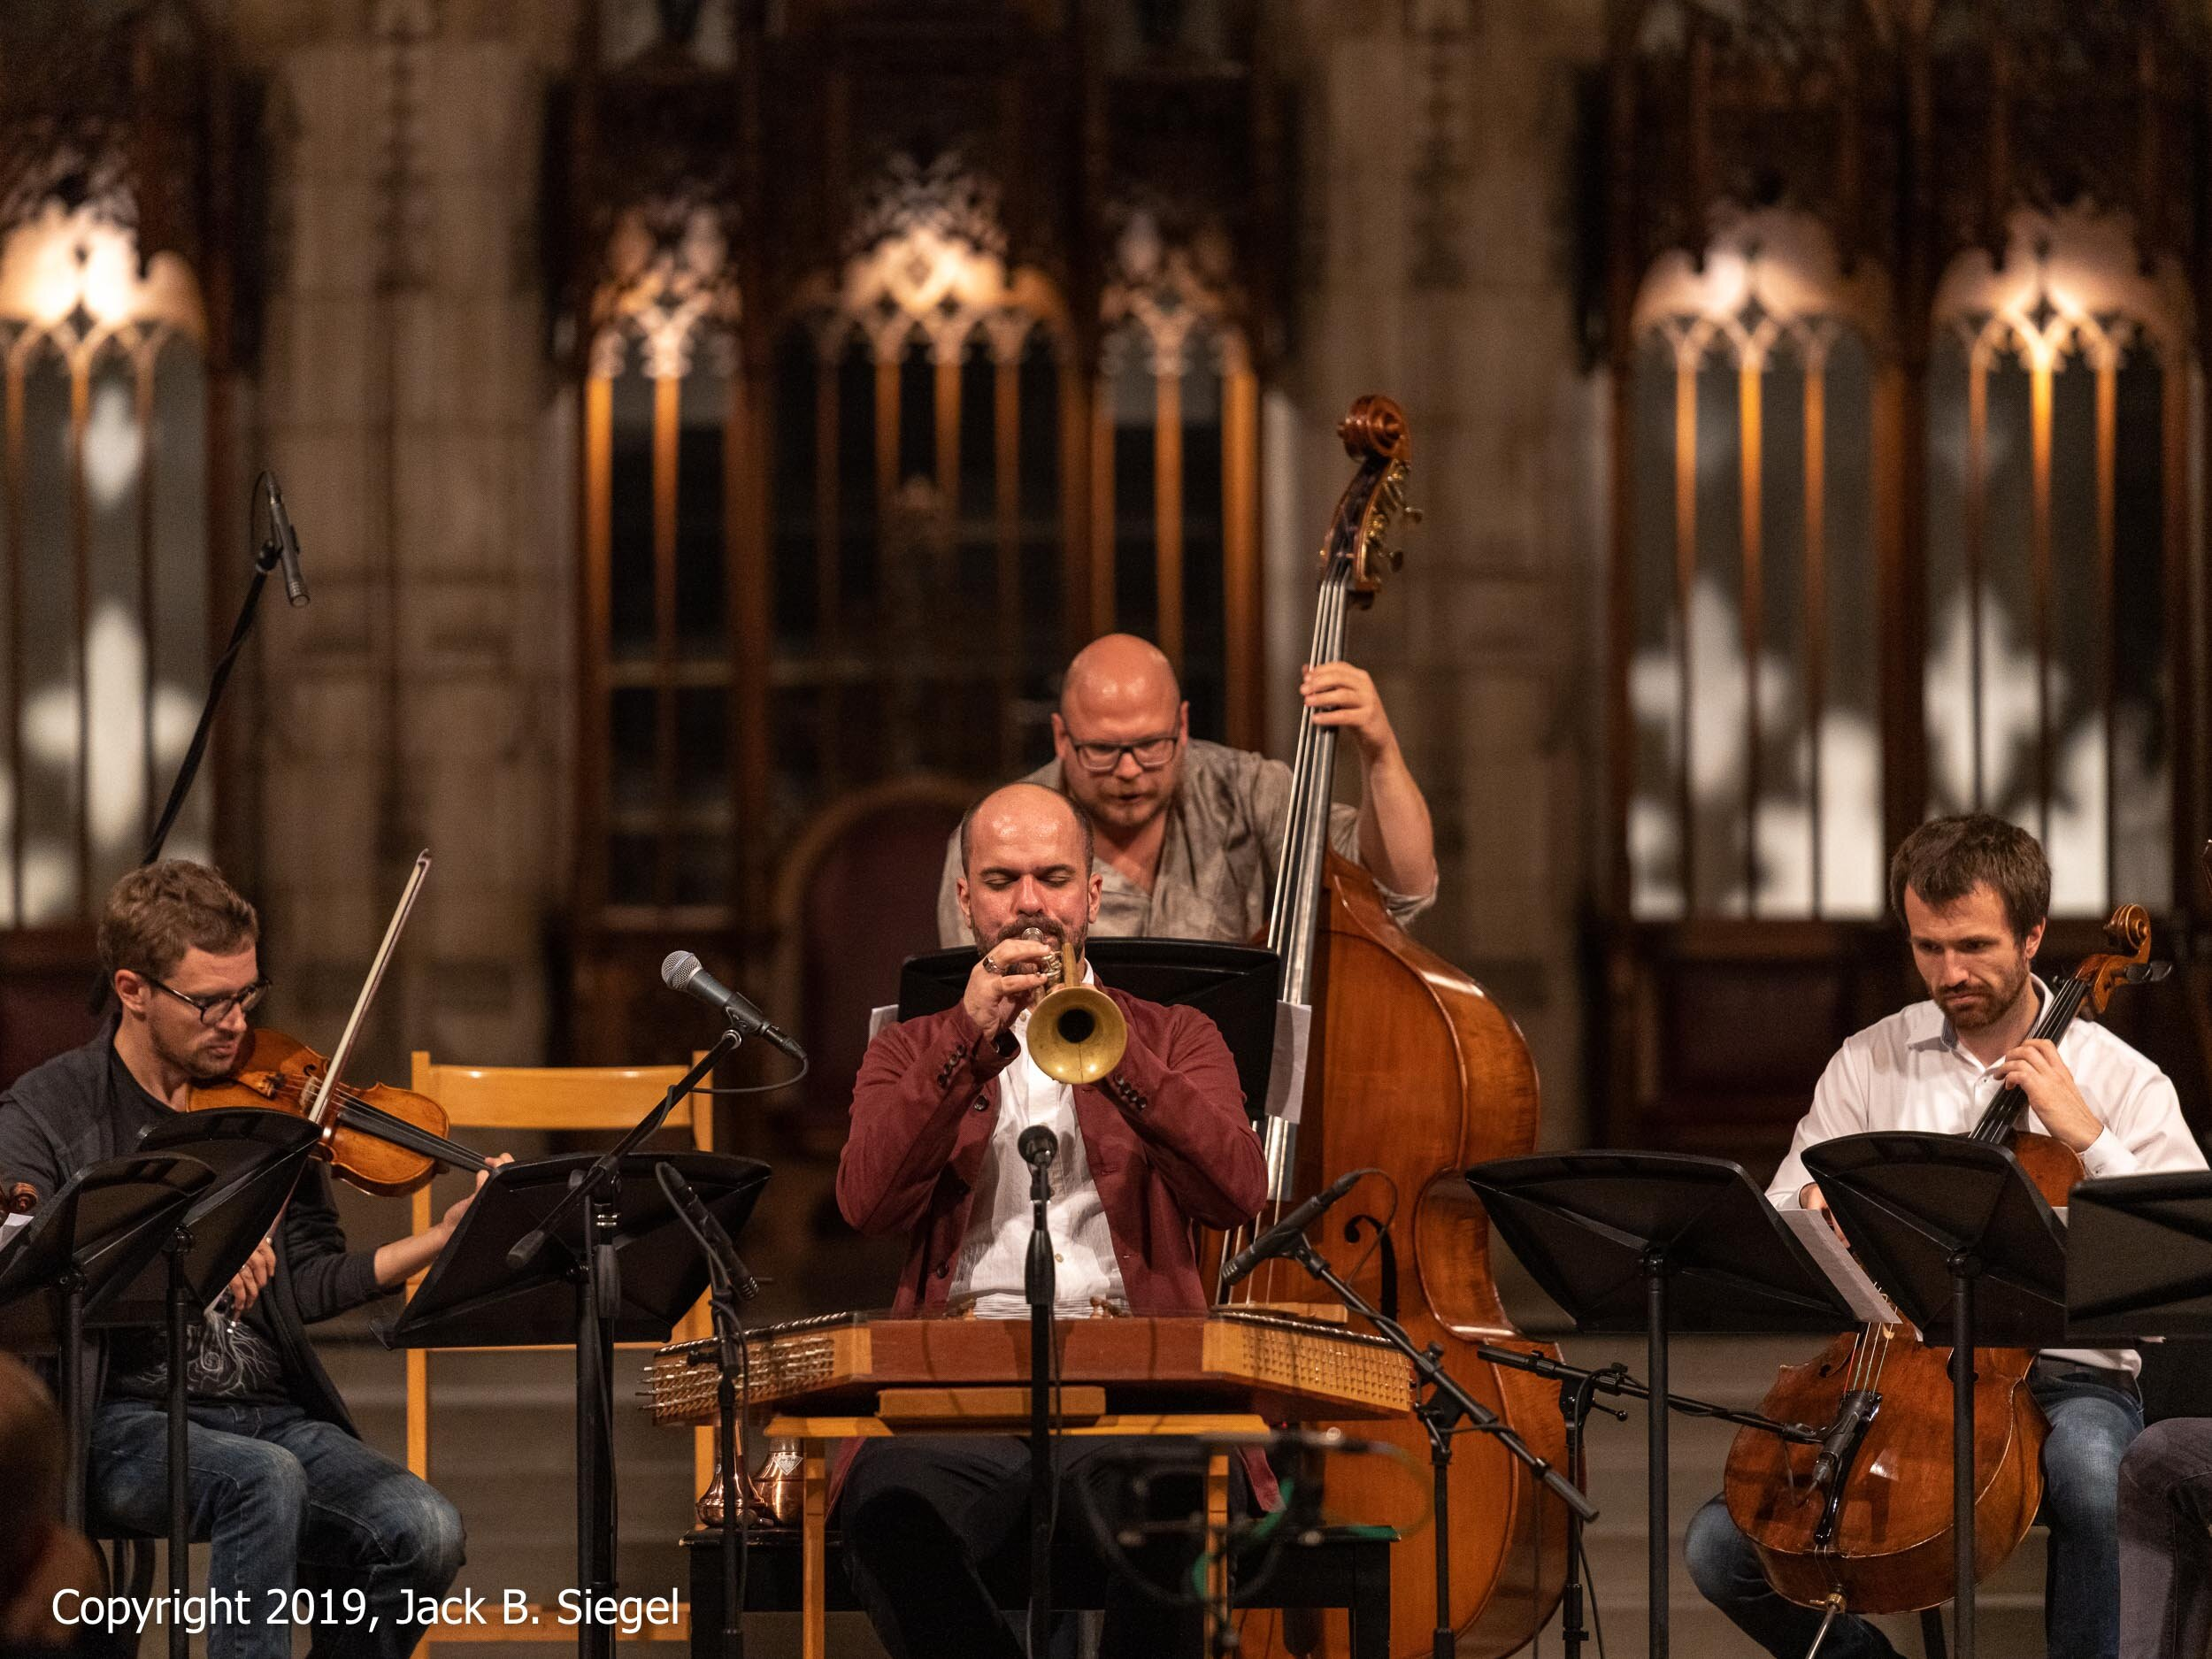 Amir Elsaffar and Company Perform  Ahwaal  in Rockefeller Chapel to Close the First Day of the Festival